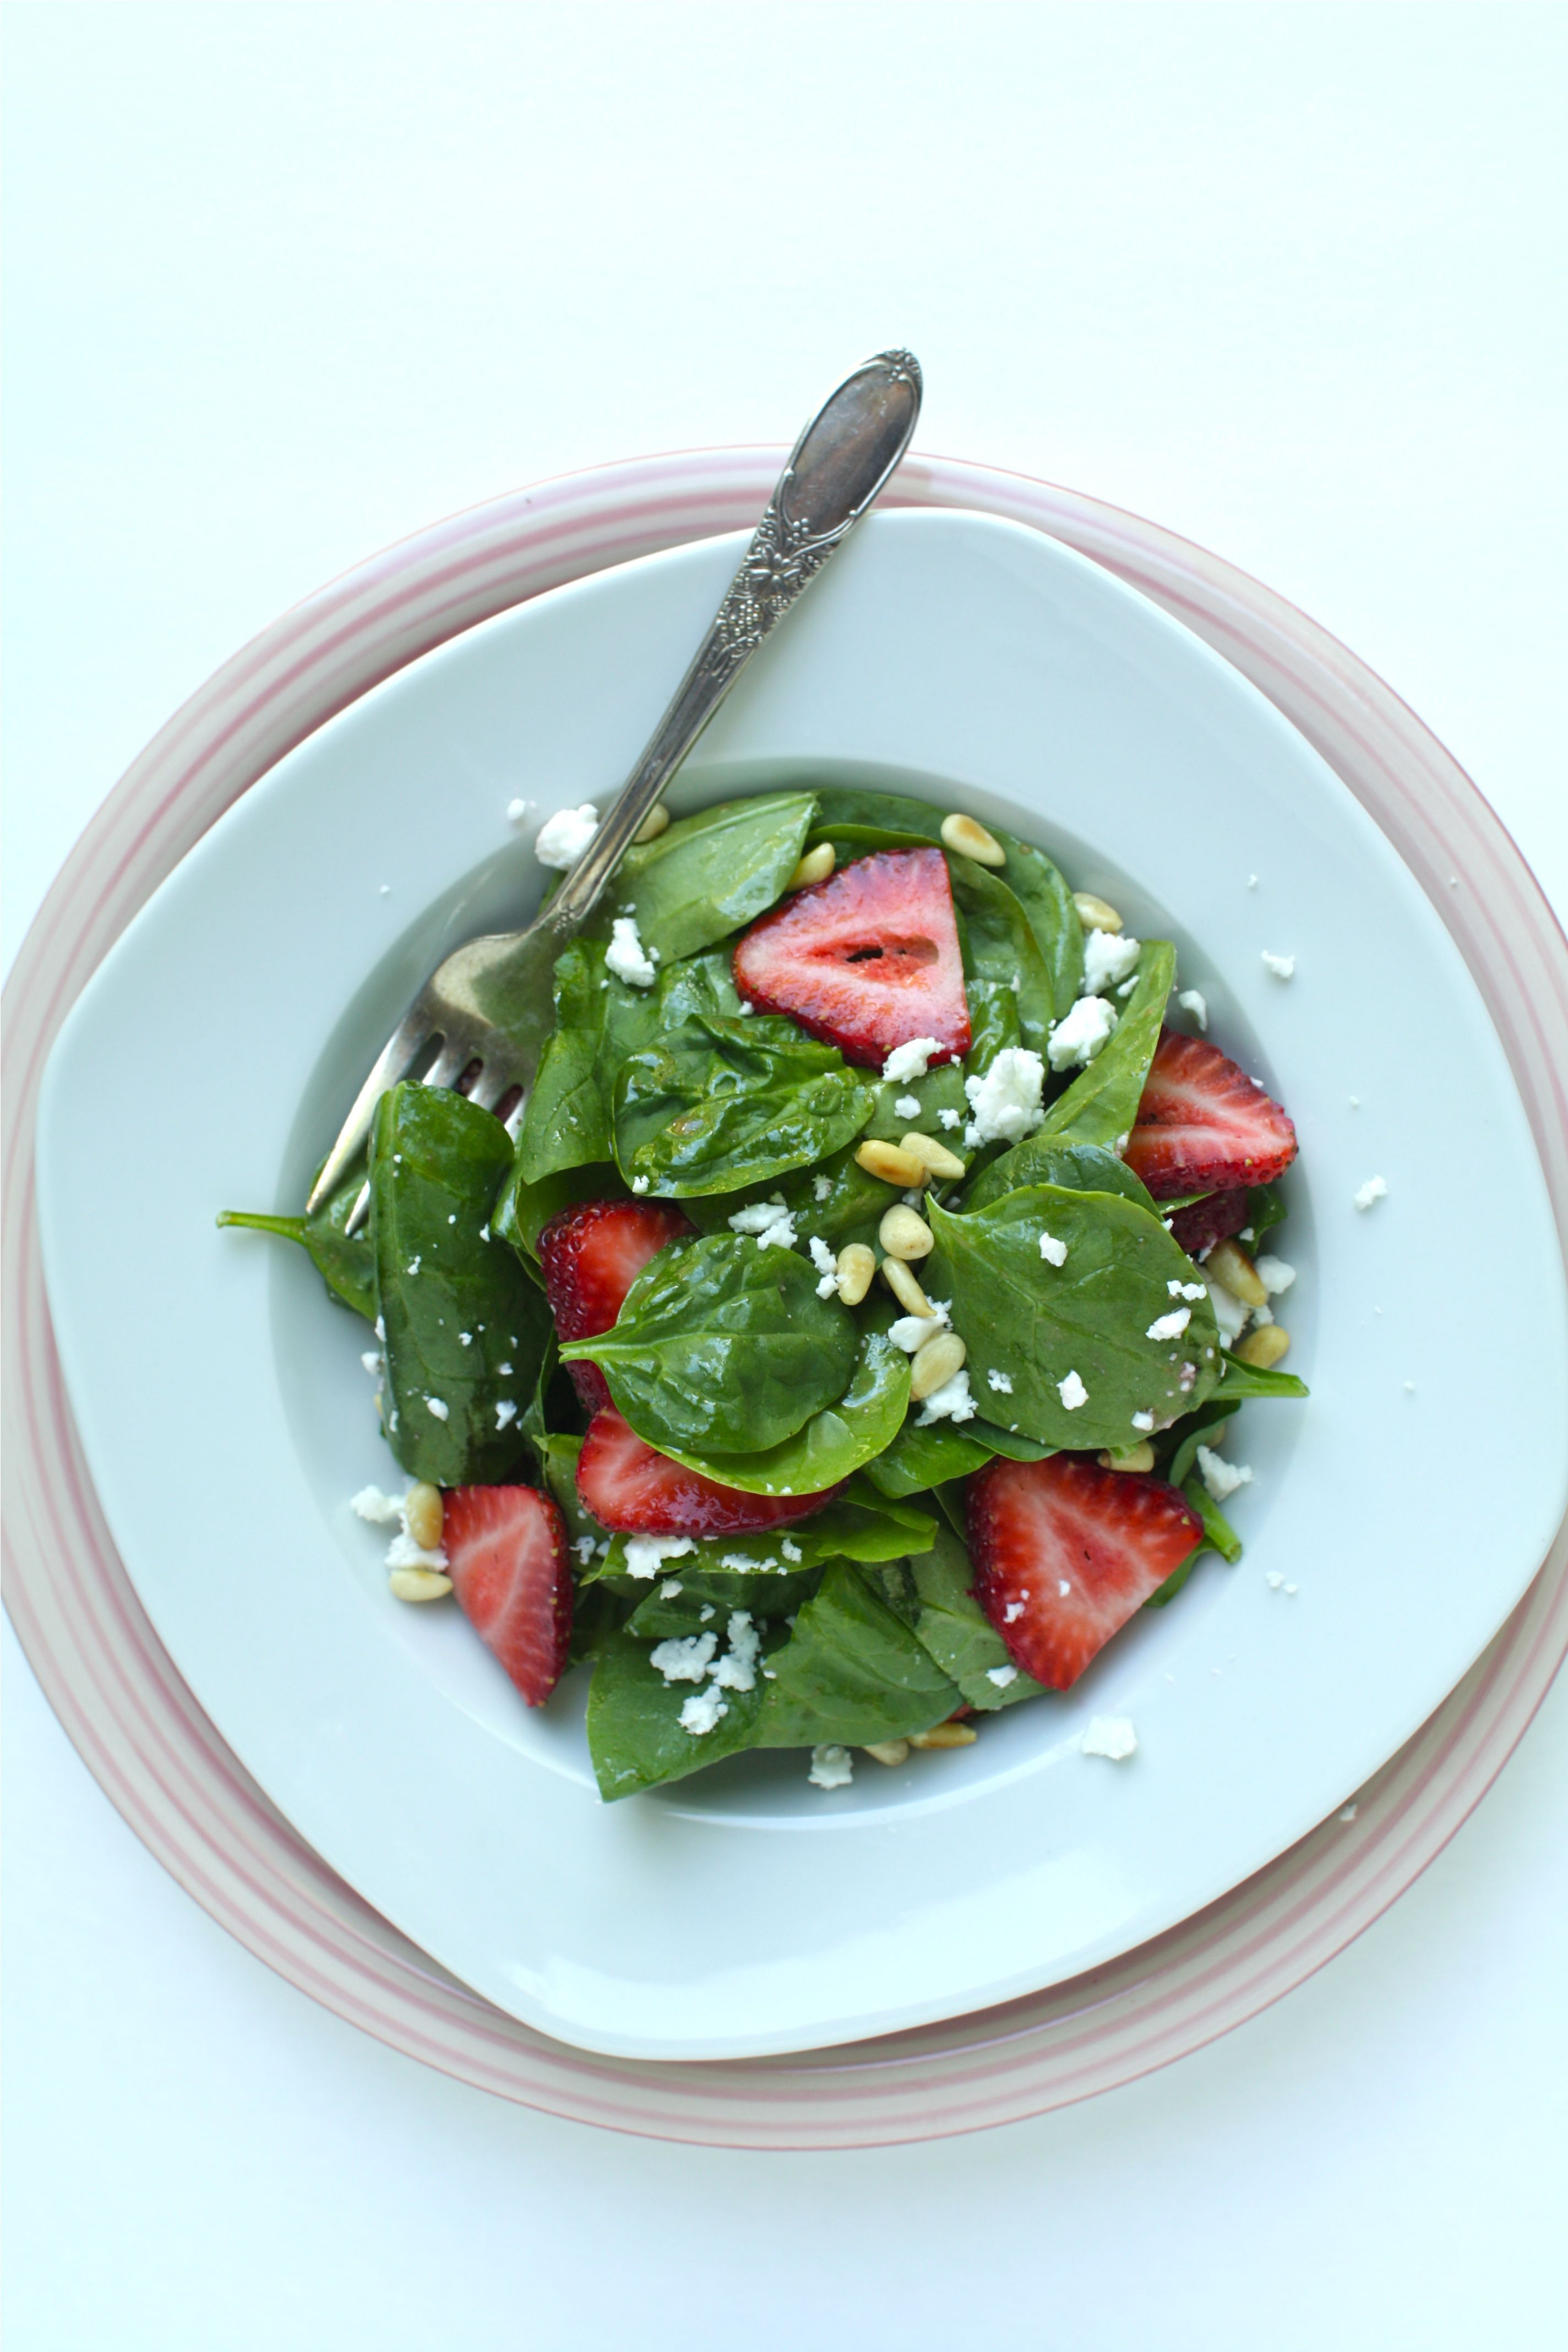 Homemade Strawberry Vinegar and a Spinach Salad with Feta & Pine Nuts